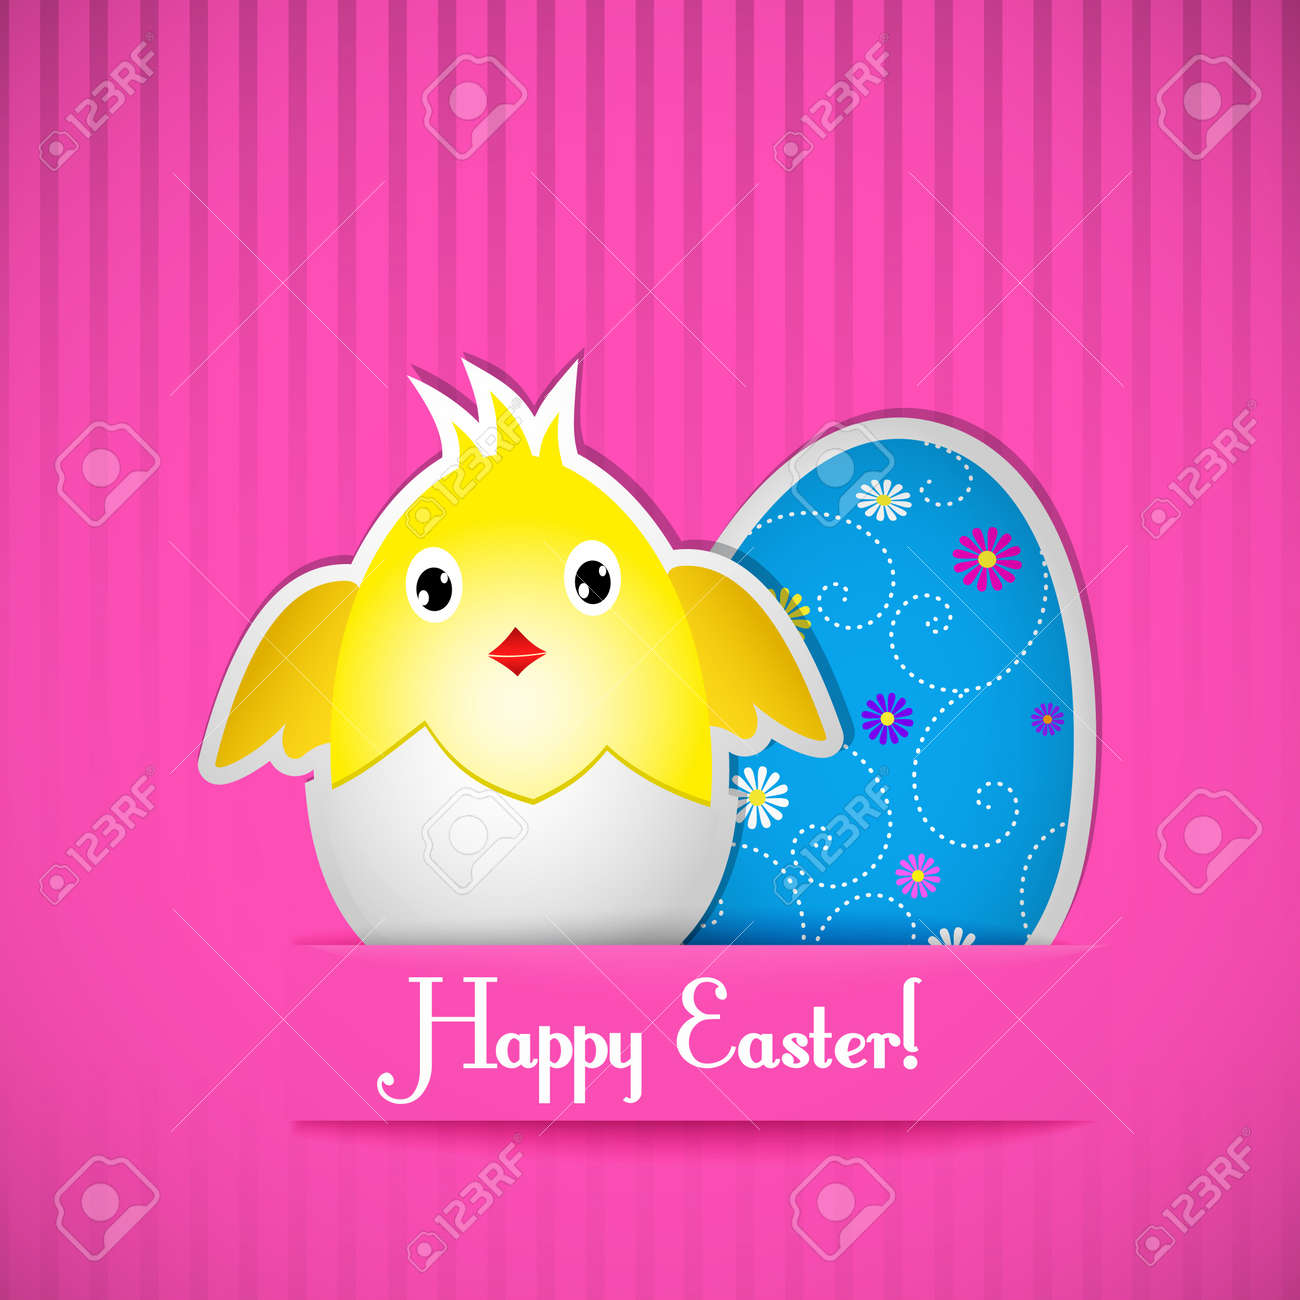 Easter card with chicken and egg, cut out of paper. Vector illustration. Stock Vector - 18221881